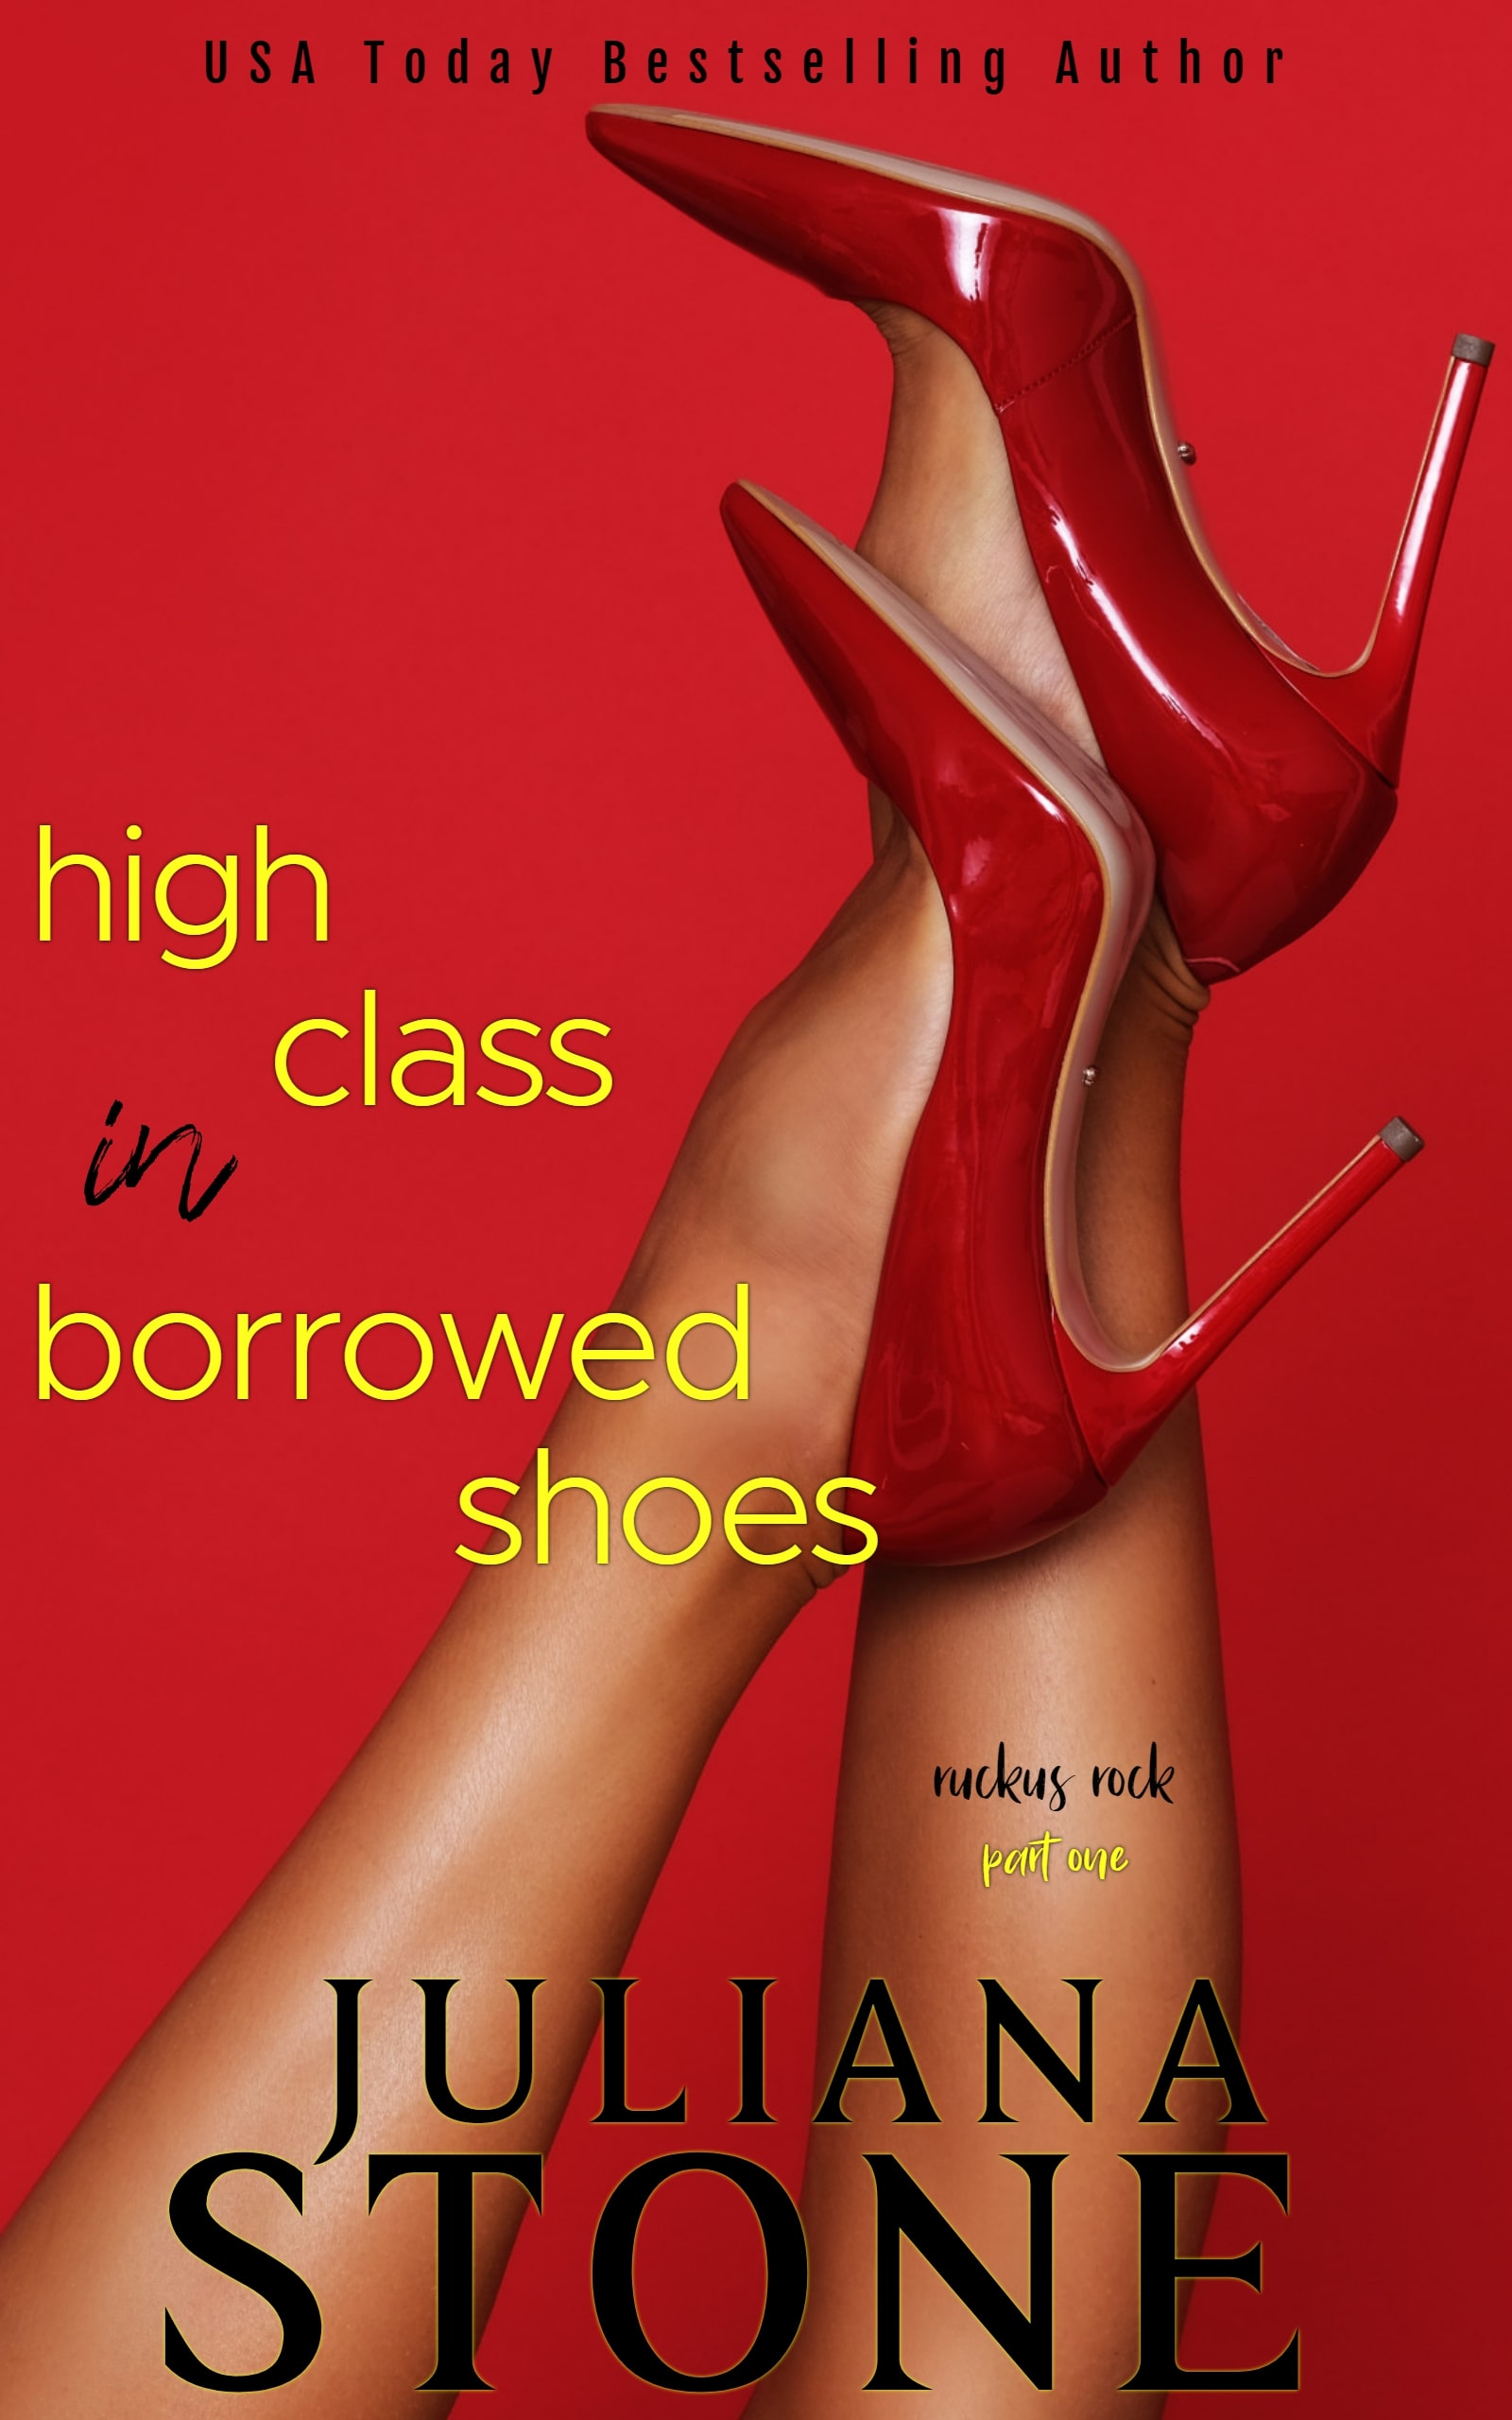 High Class In Borrowed Shoes-Part One by Juliana Stone